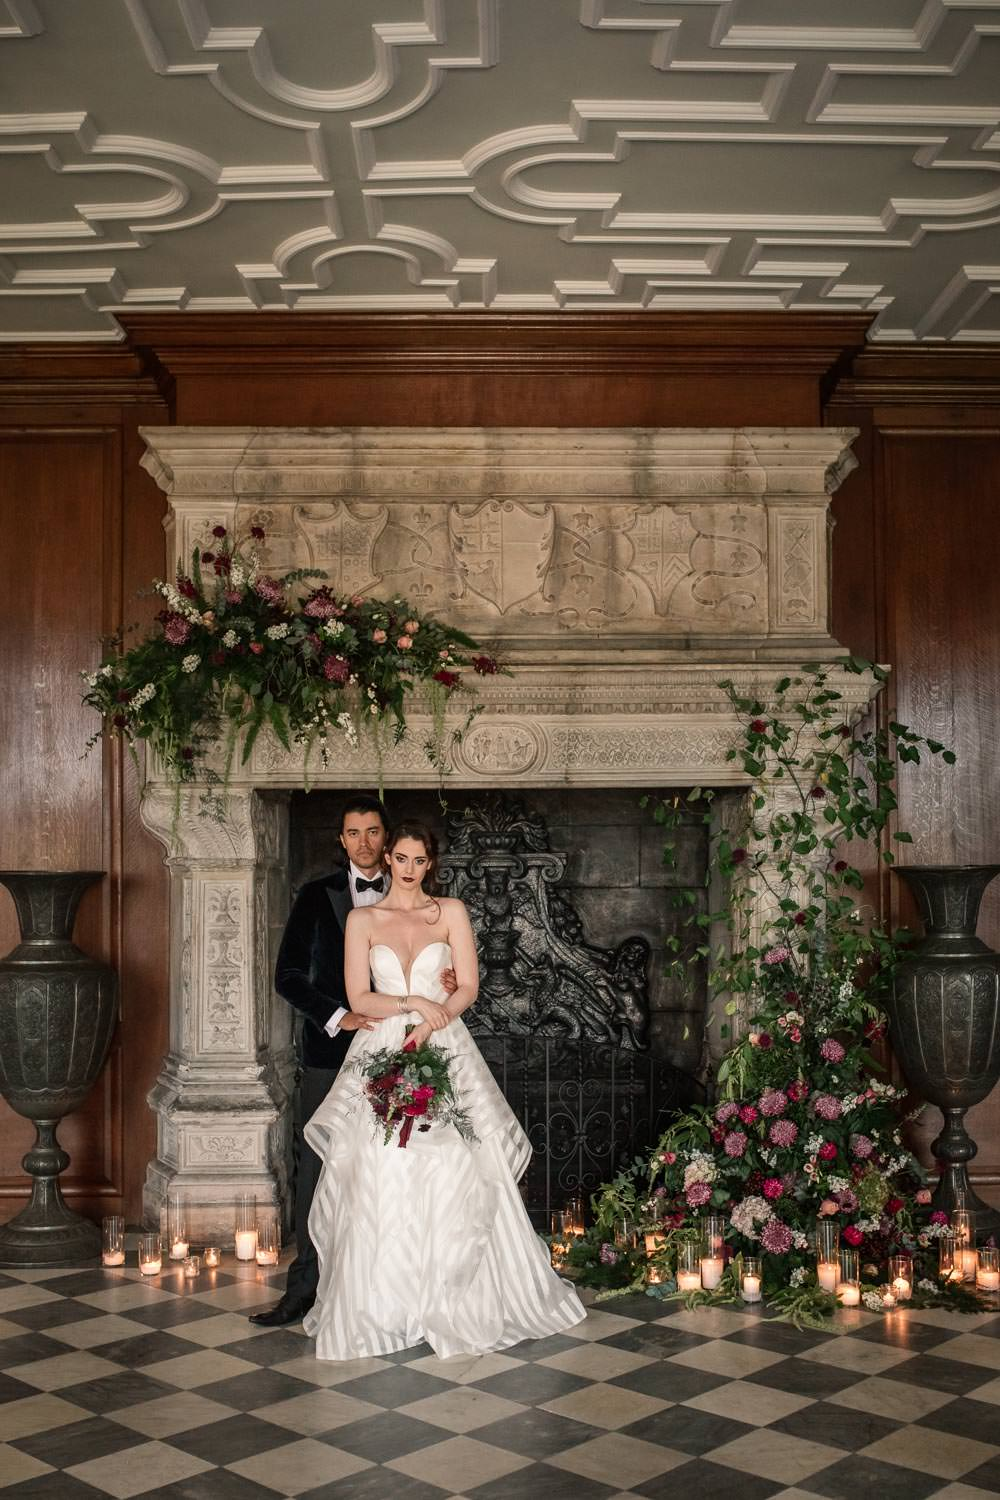 Fireplace Mantlepiece Flowers Installation Candles Greenery Backdrop Winter Luxe Wedding Ideas Becky Harley Photography